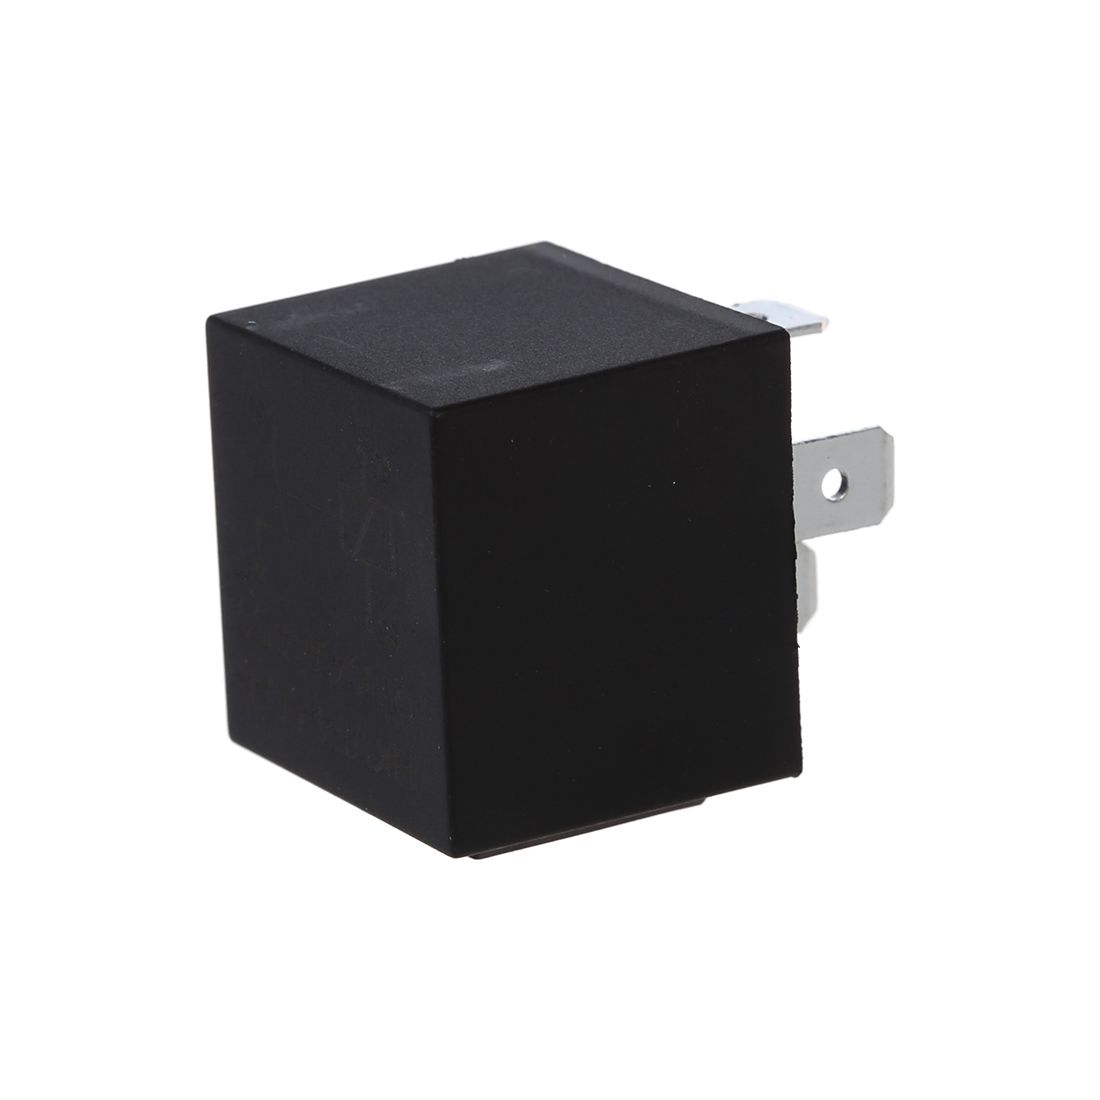 Car Automotive Bike 12v 40 Amp 4 Pin Changeover Relay Ws Xv Q2i9 Release Time Contact Rating 40a Coil Nominal Voltage Material Silver Cadmium Oxide As Standard Operation 10ms Max